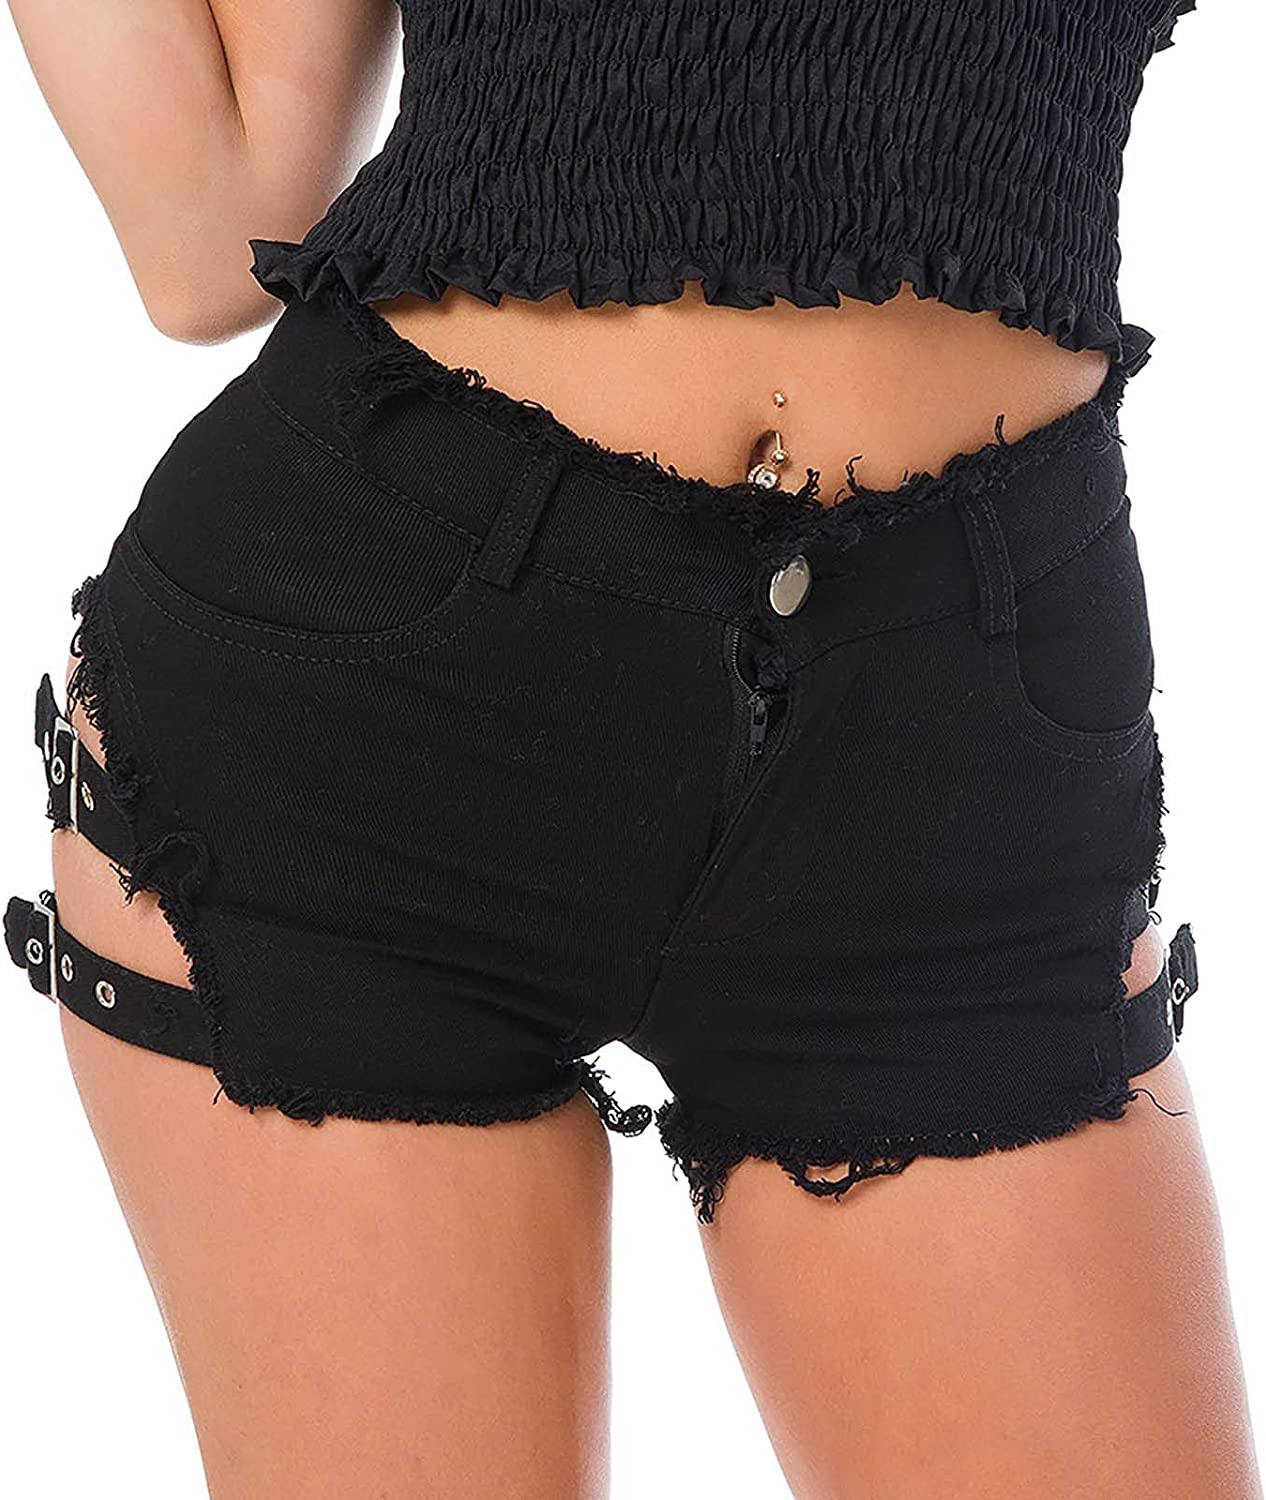 UBST Shorts for Women, Women's Destroyed Ripped Hole Denim Shorts Sexy Short Jeans Side Straps Mini Hot Pants Clubwear